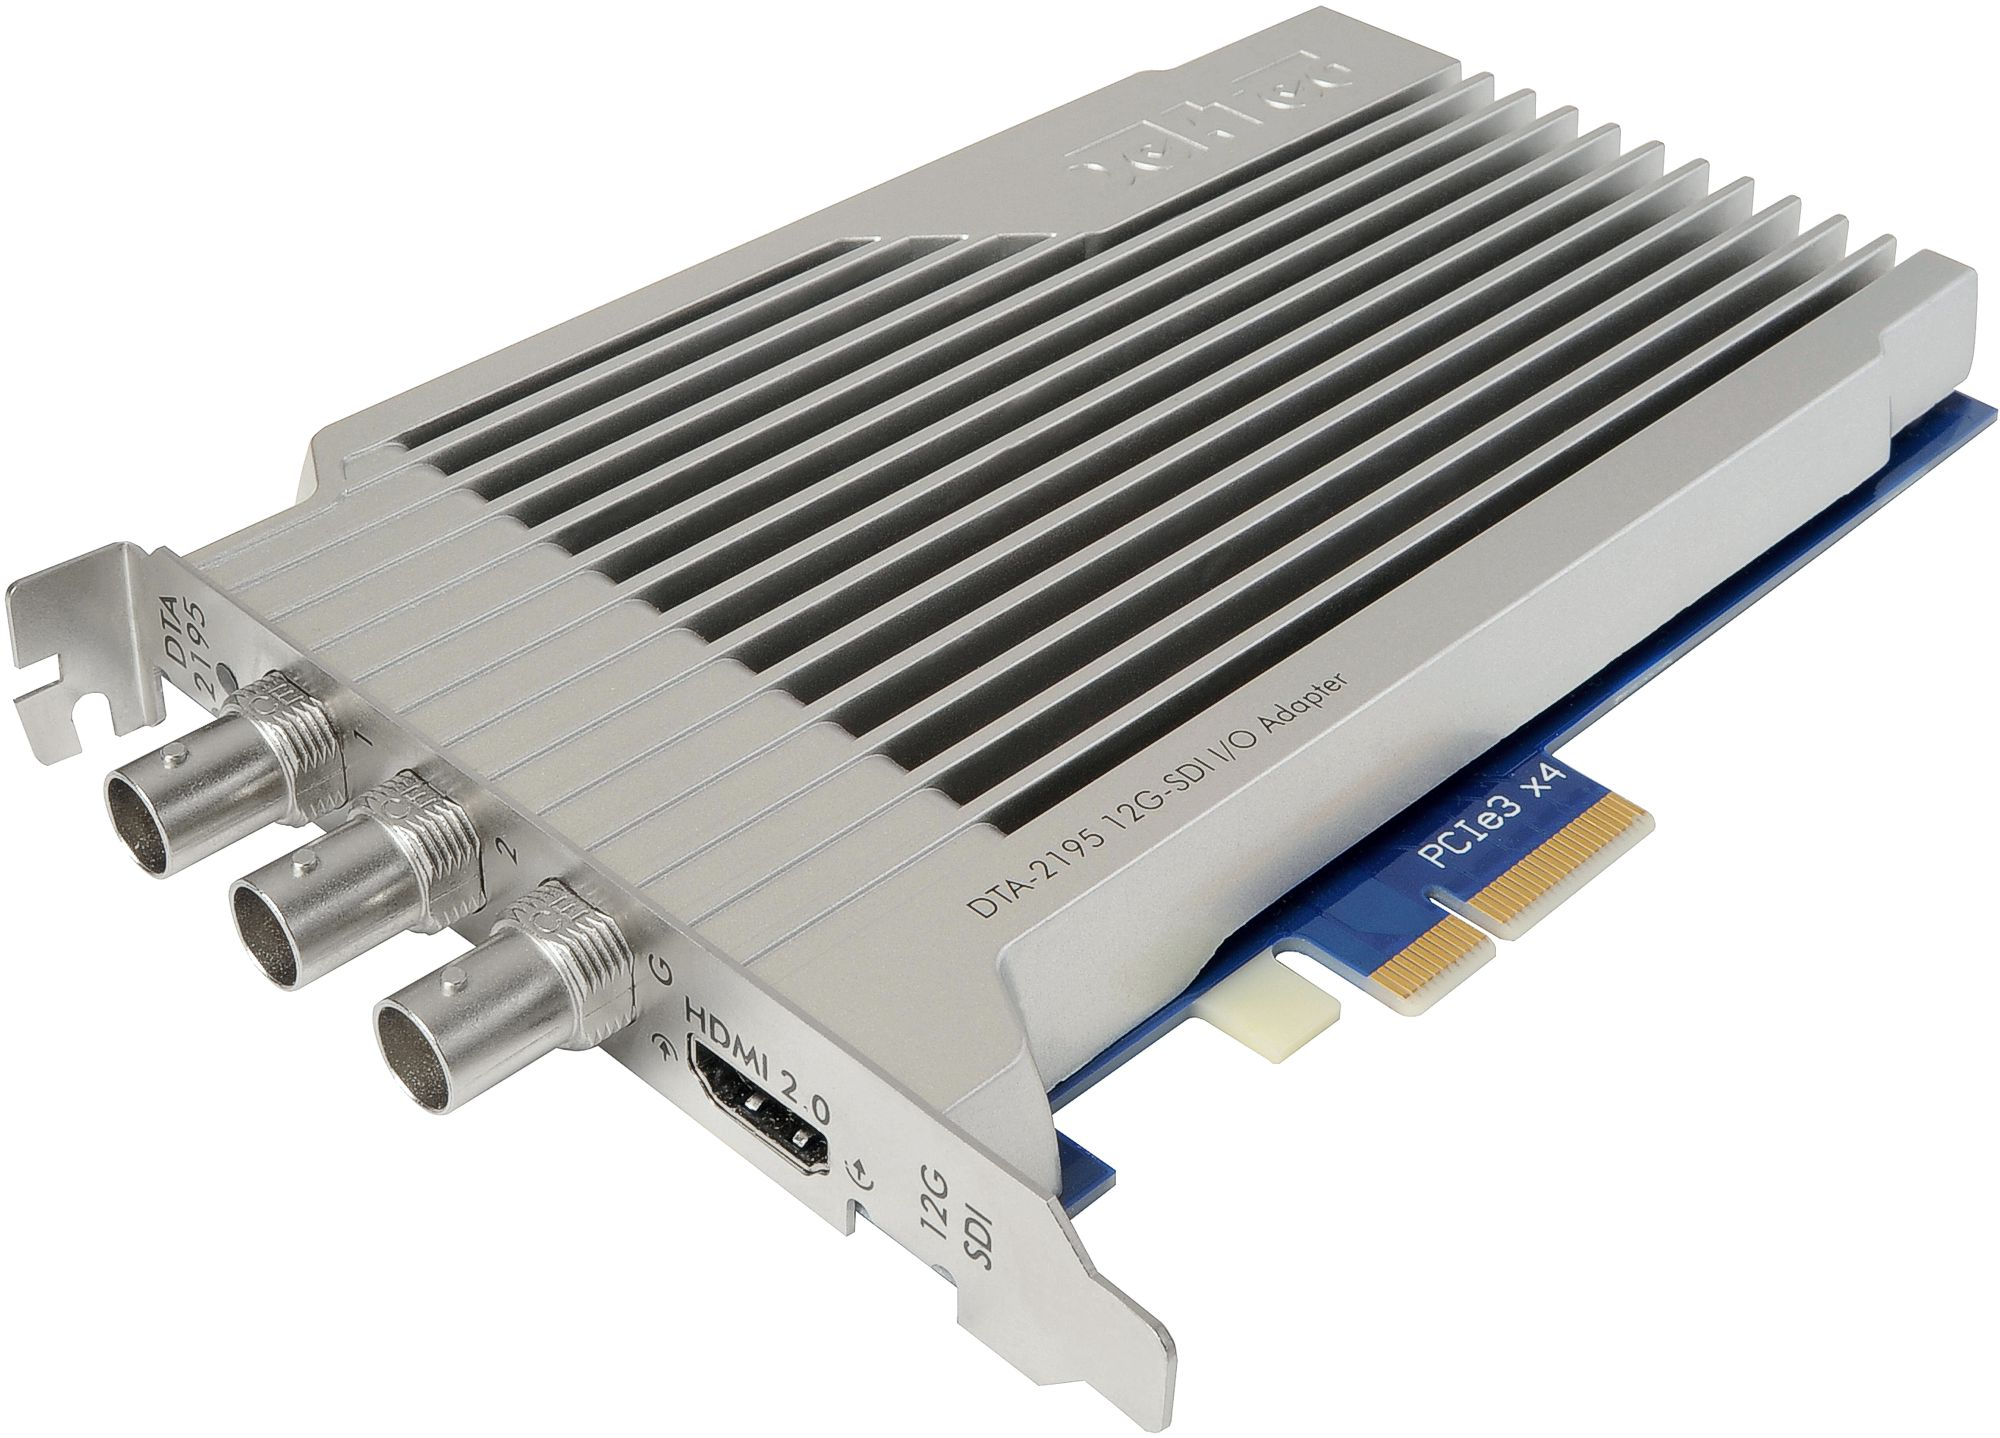 12G-SDI and HDMI 2.0 connectivity for PCI Express bus